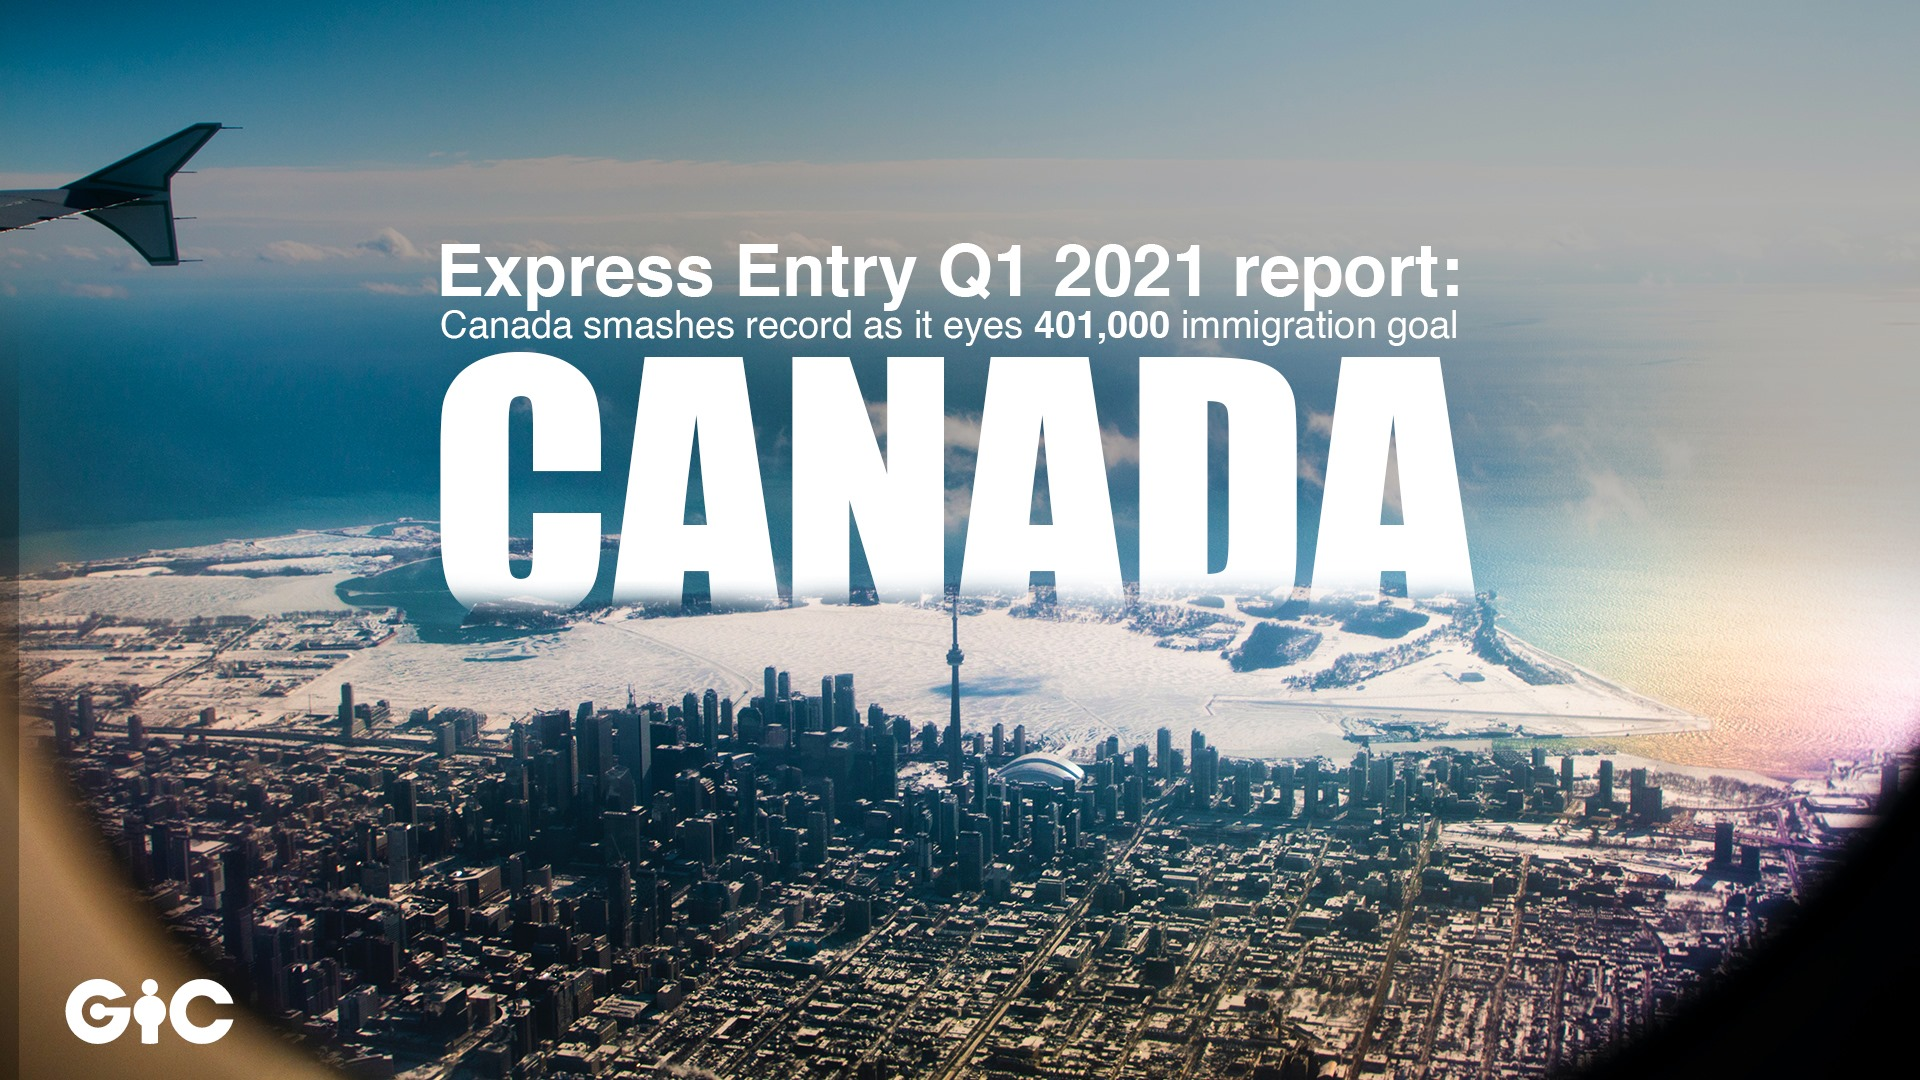 Express Entry Q1 2021 report Canada smashes record as it eyes 401,000 immigration goal